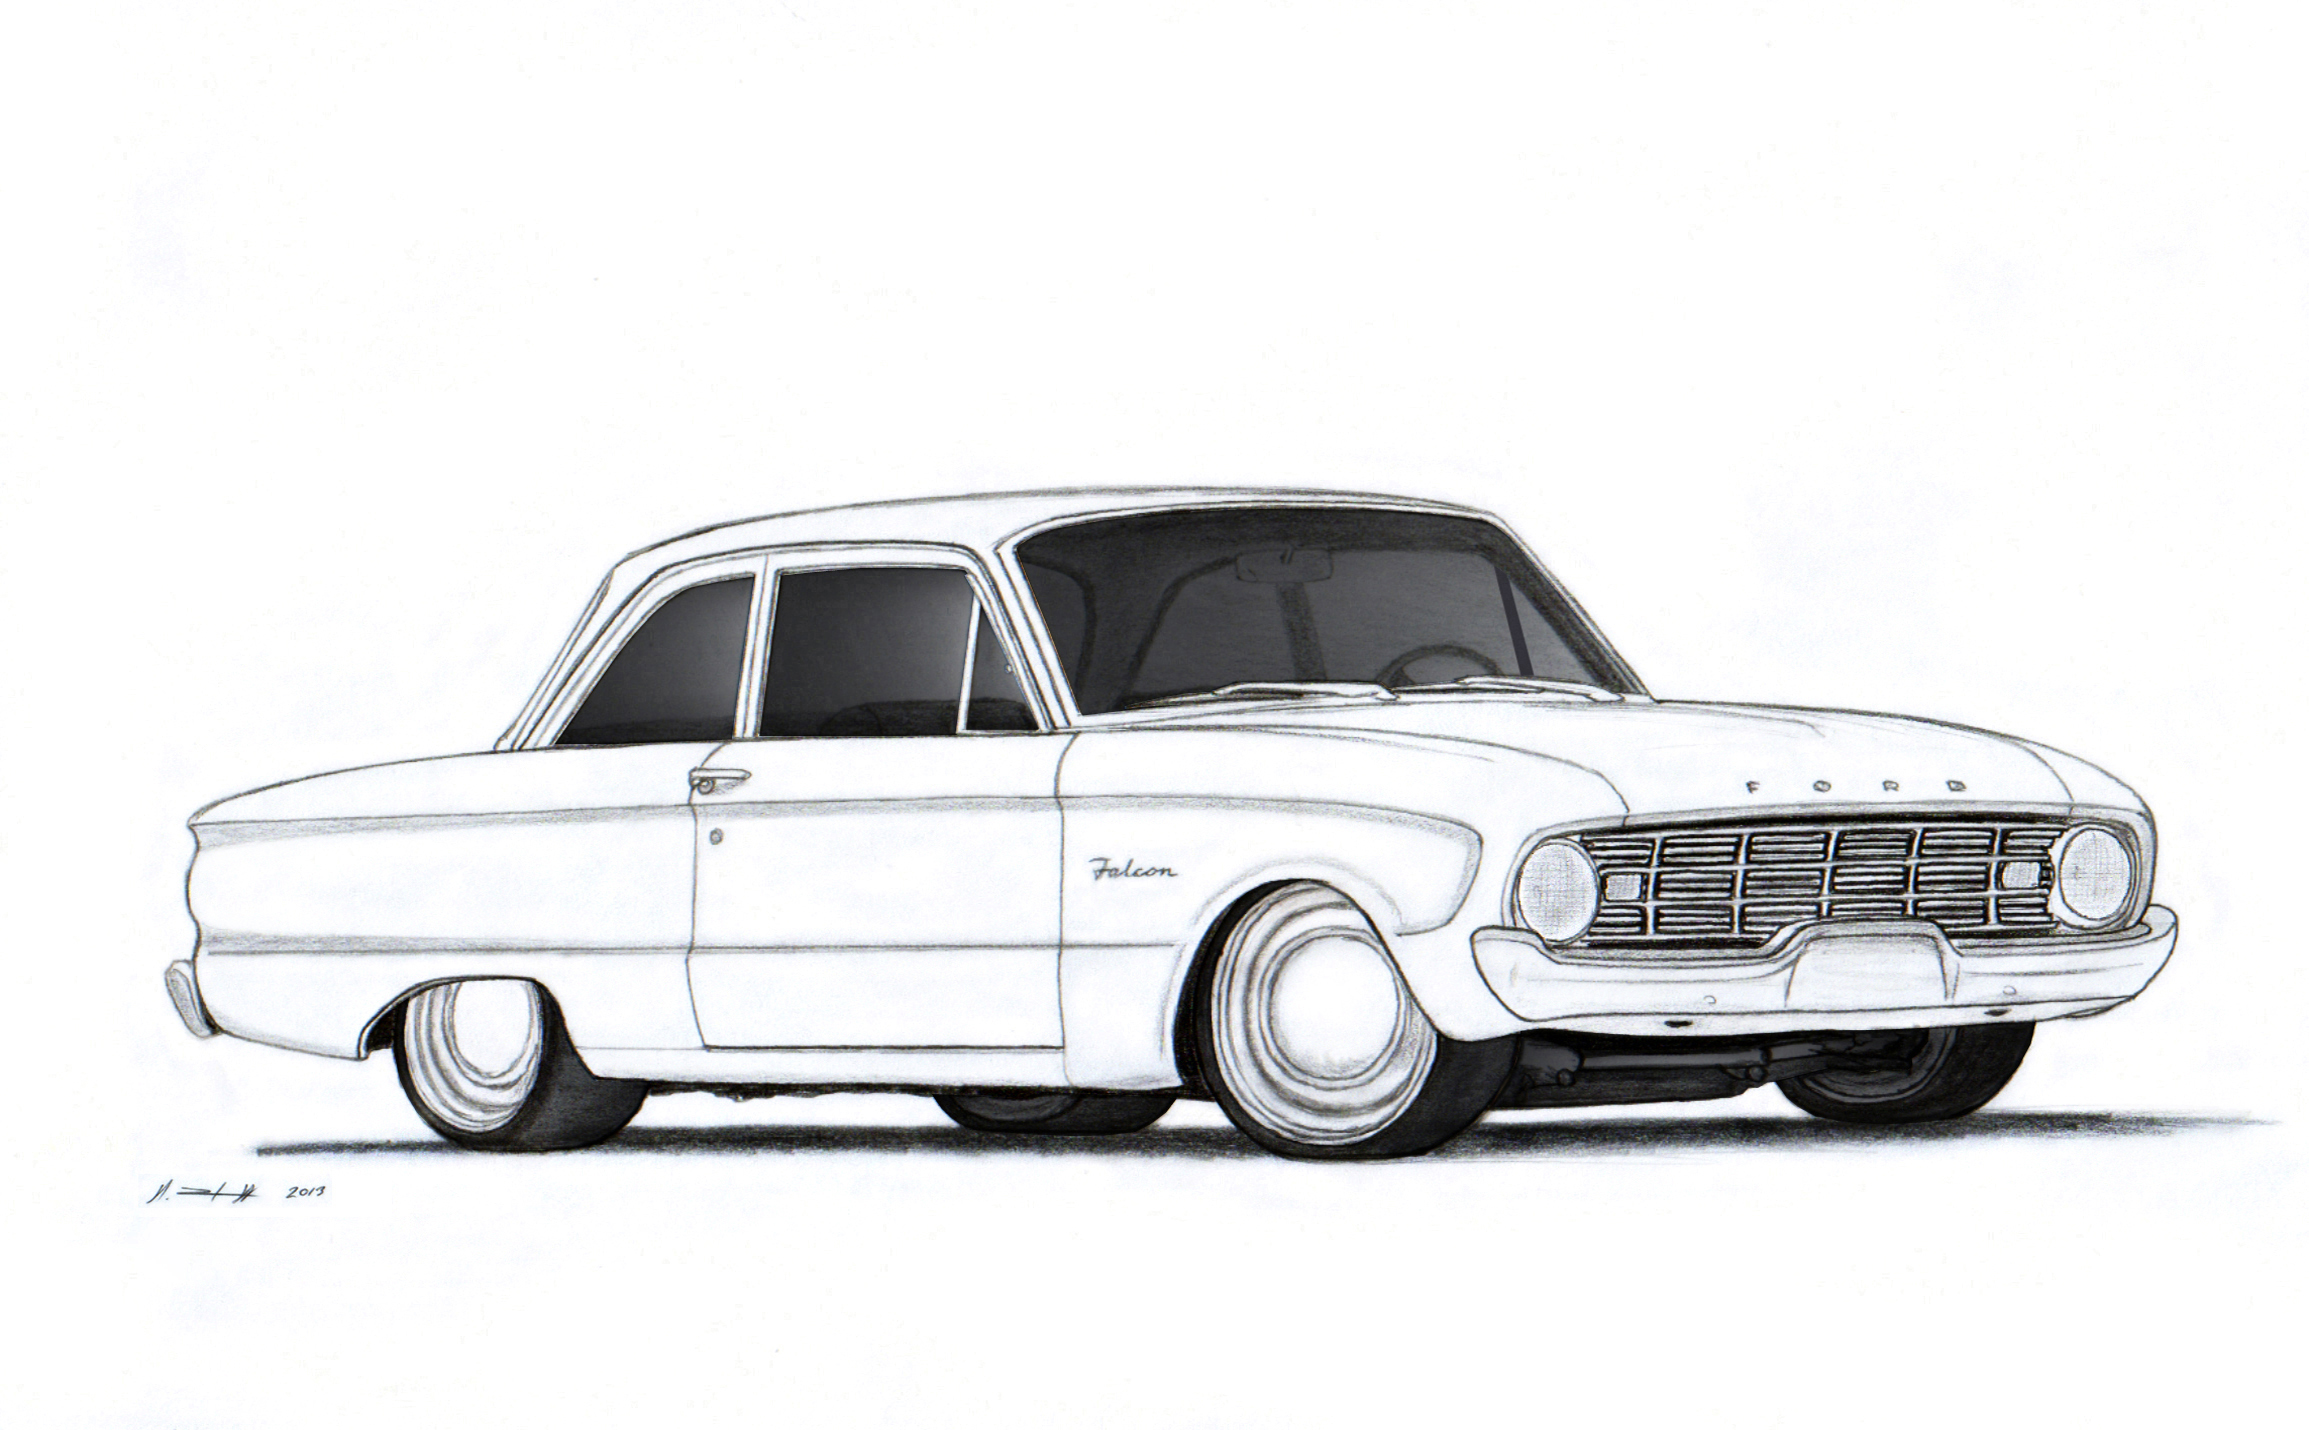 Ford Falcon Drawings